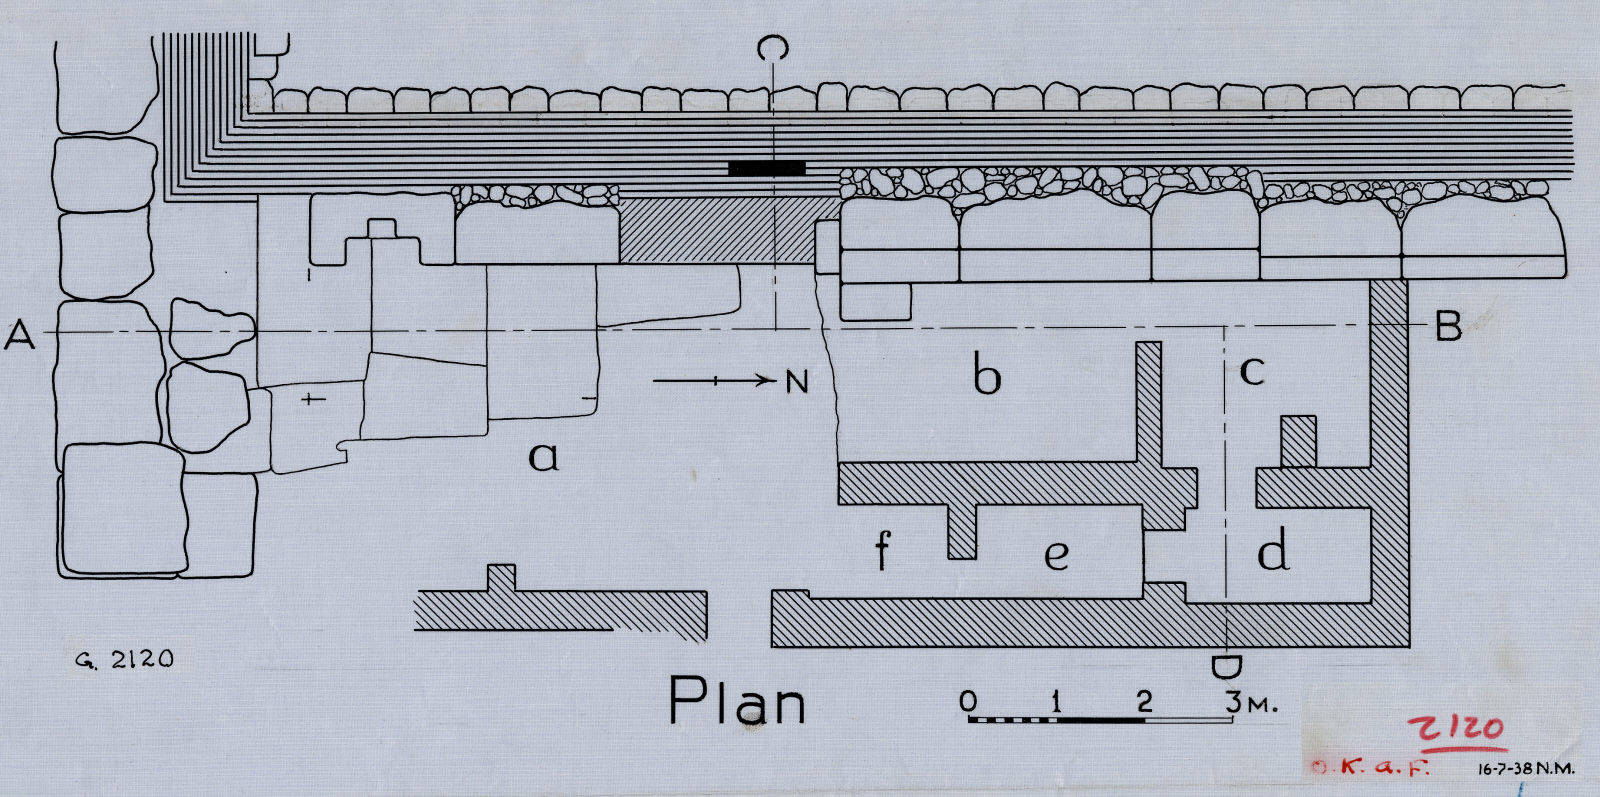 Maps and plans: G 2120, Plan of chapel